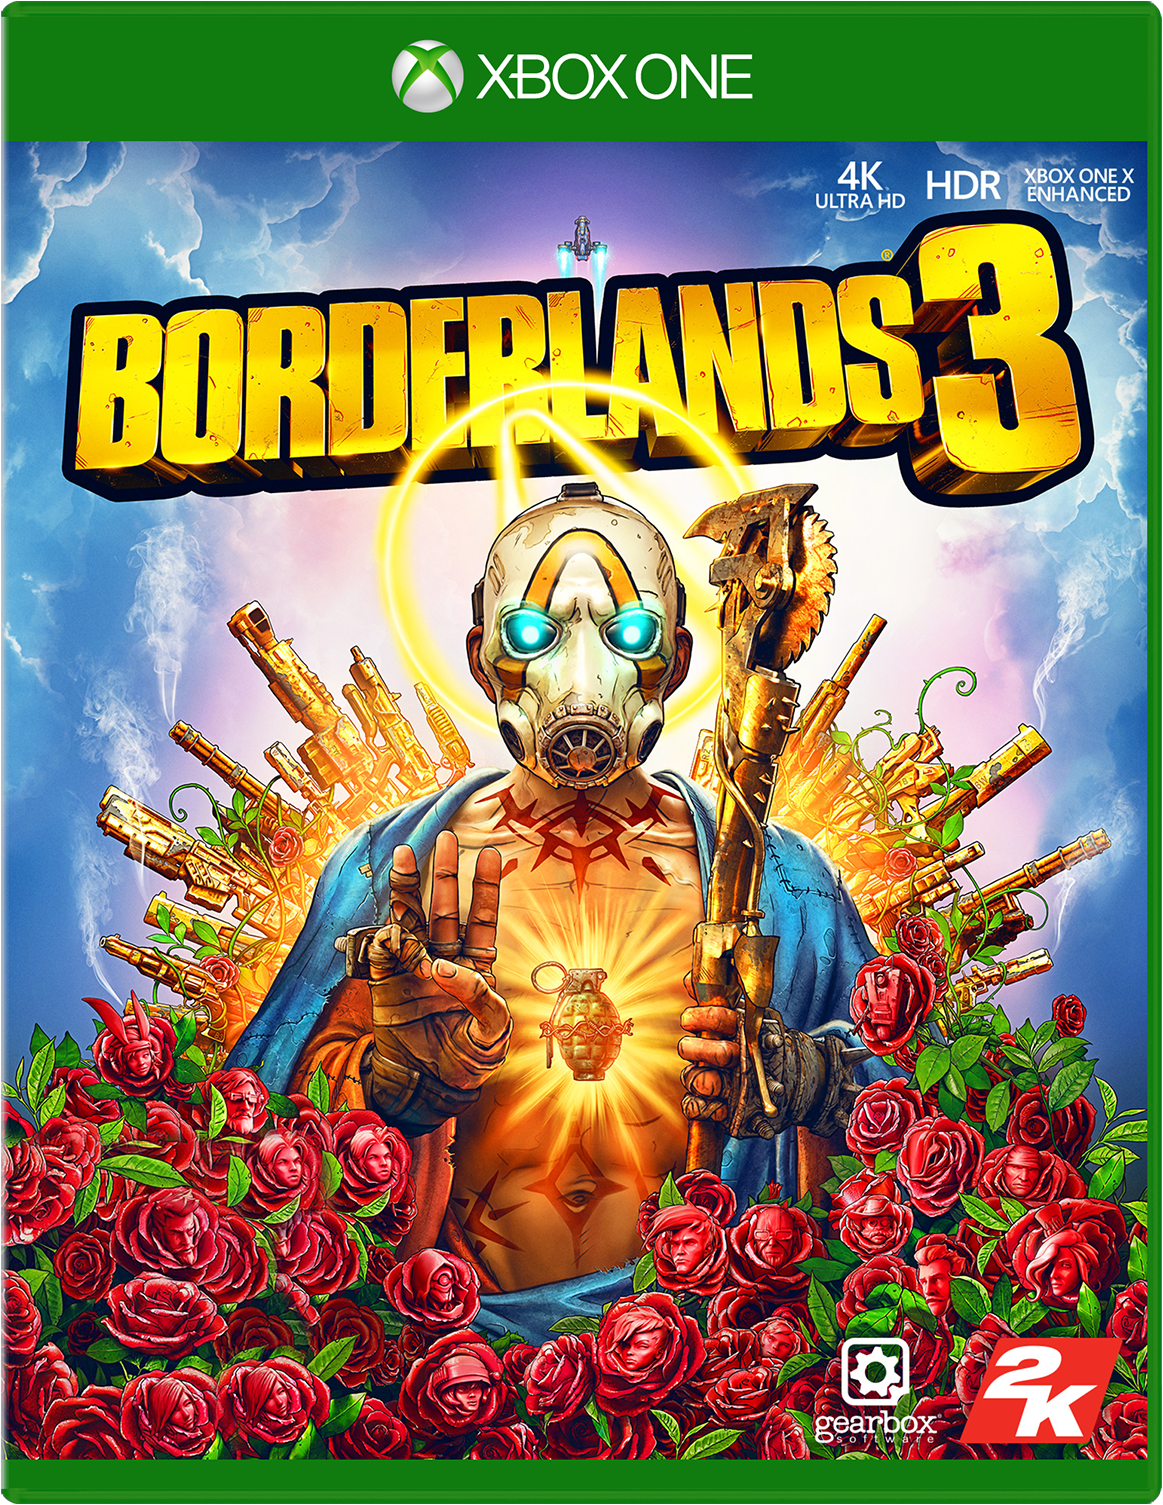 Borderlands 3 for Xbox One game box